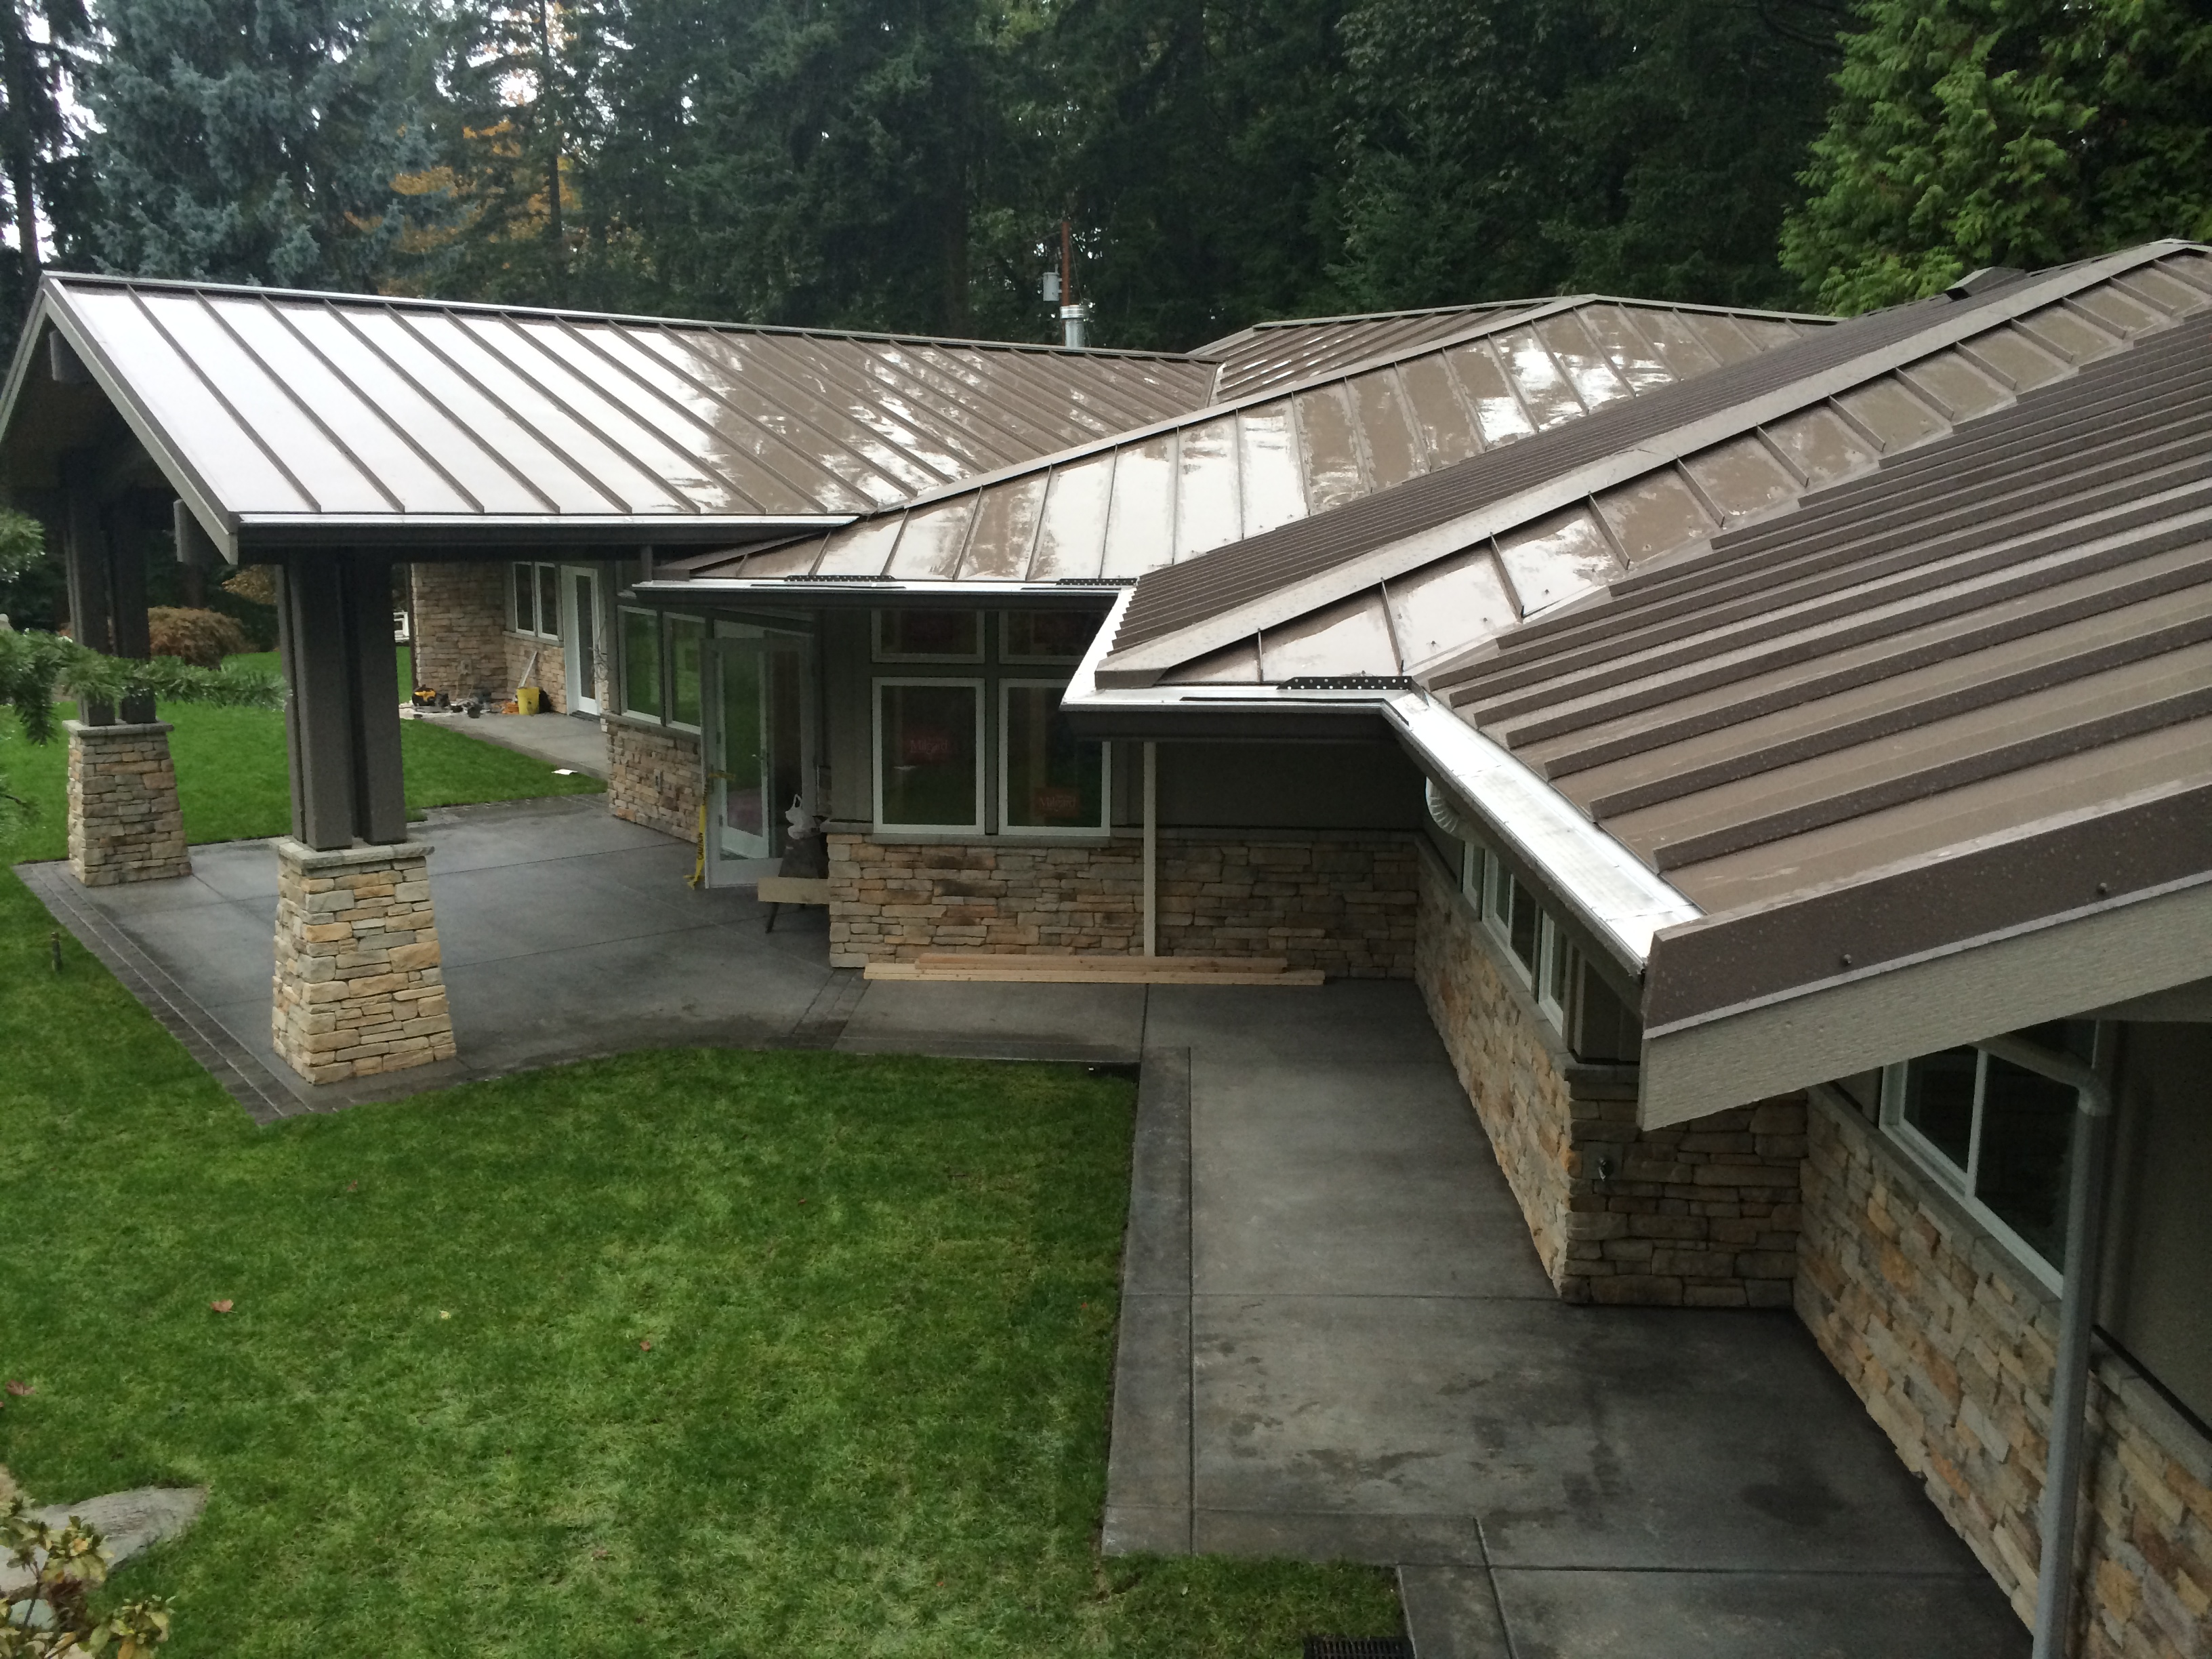 Gutter Replacement In Bellevue All About Gutters 425